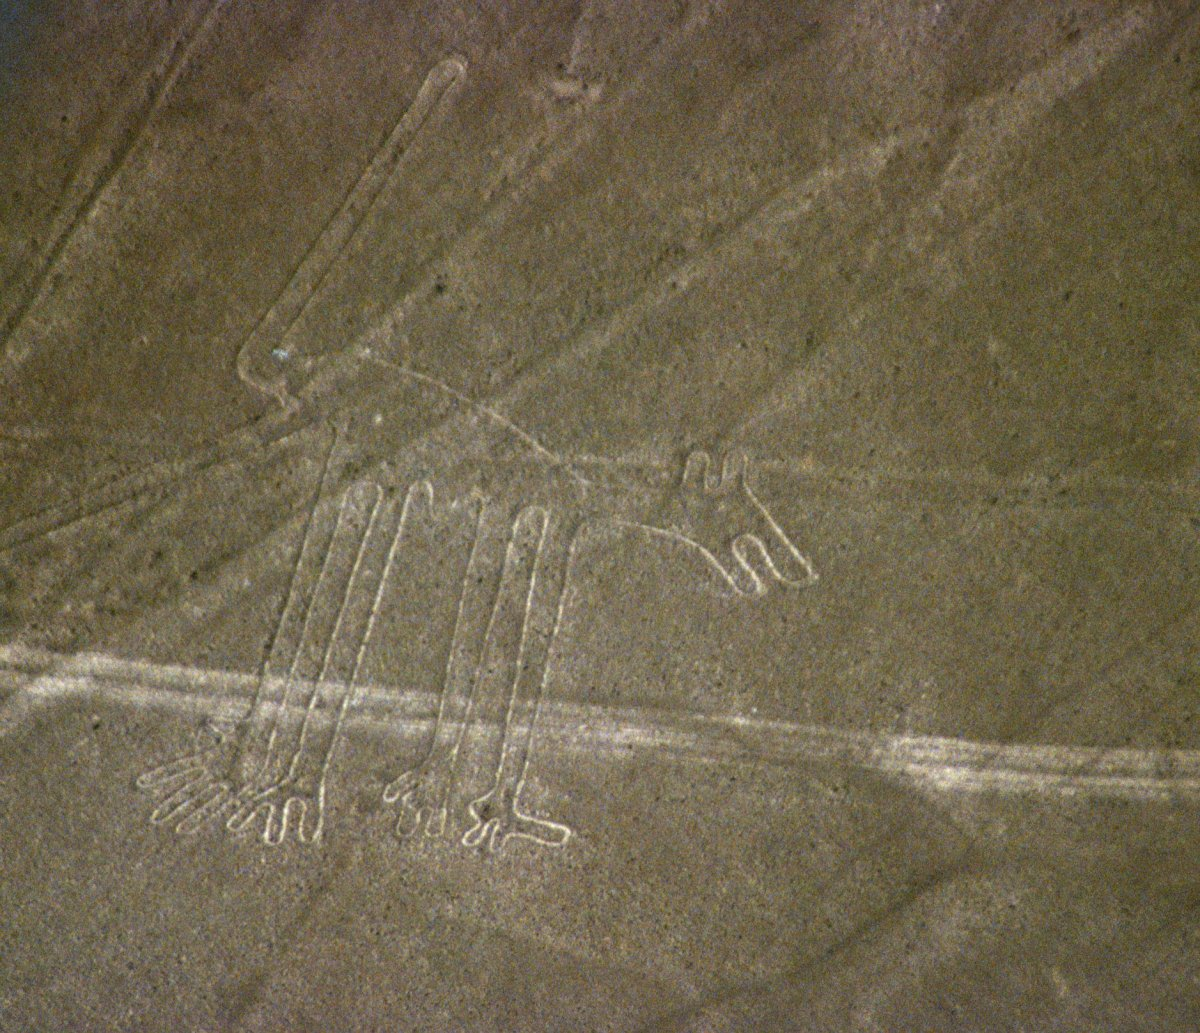 The Nazca Lines included pictures of animals